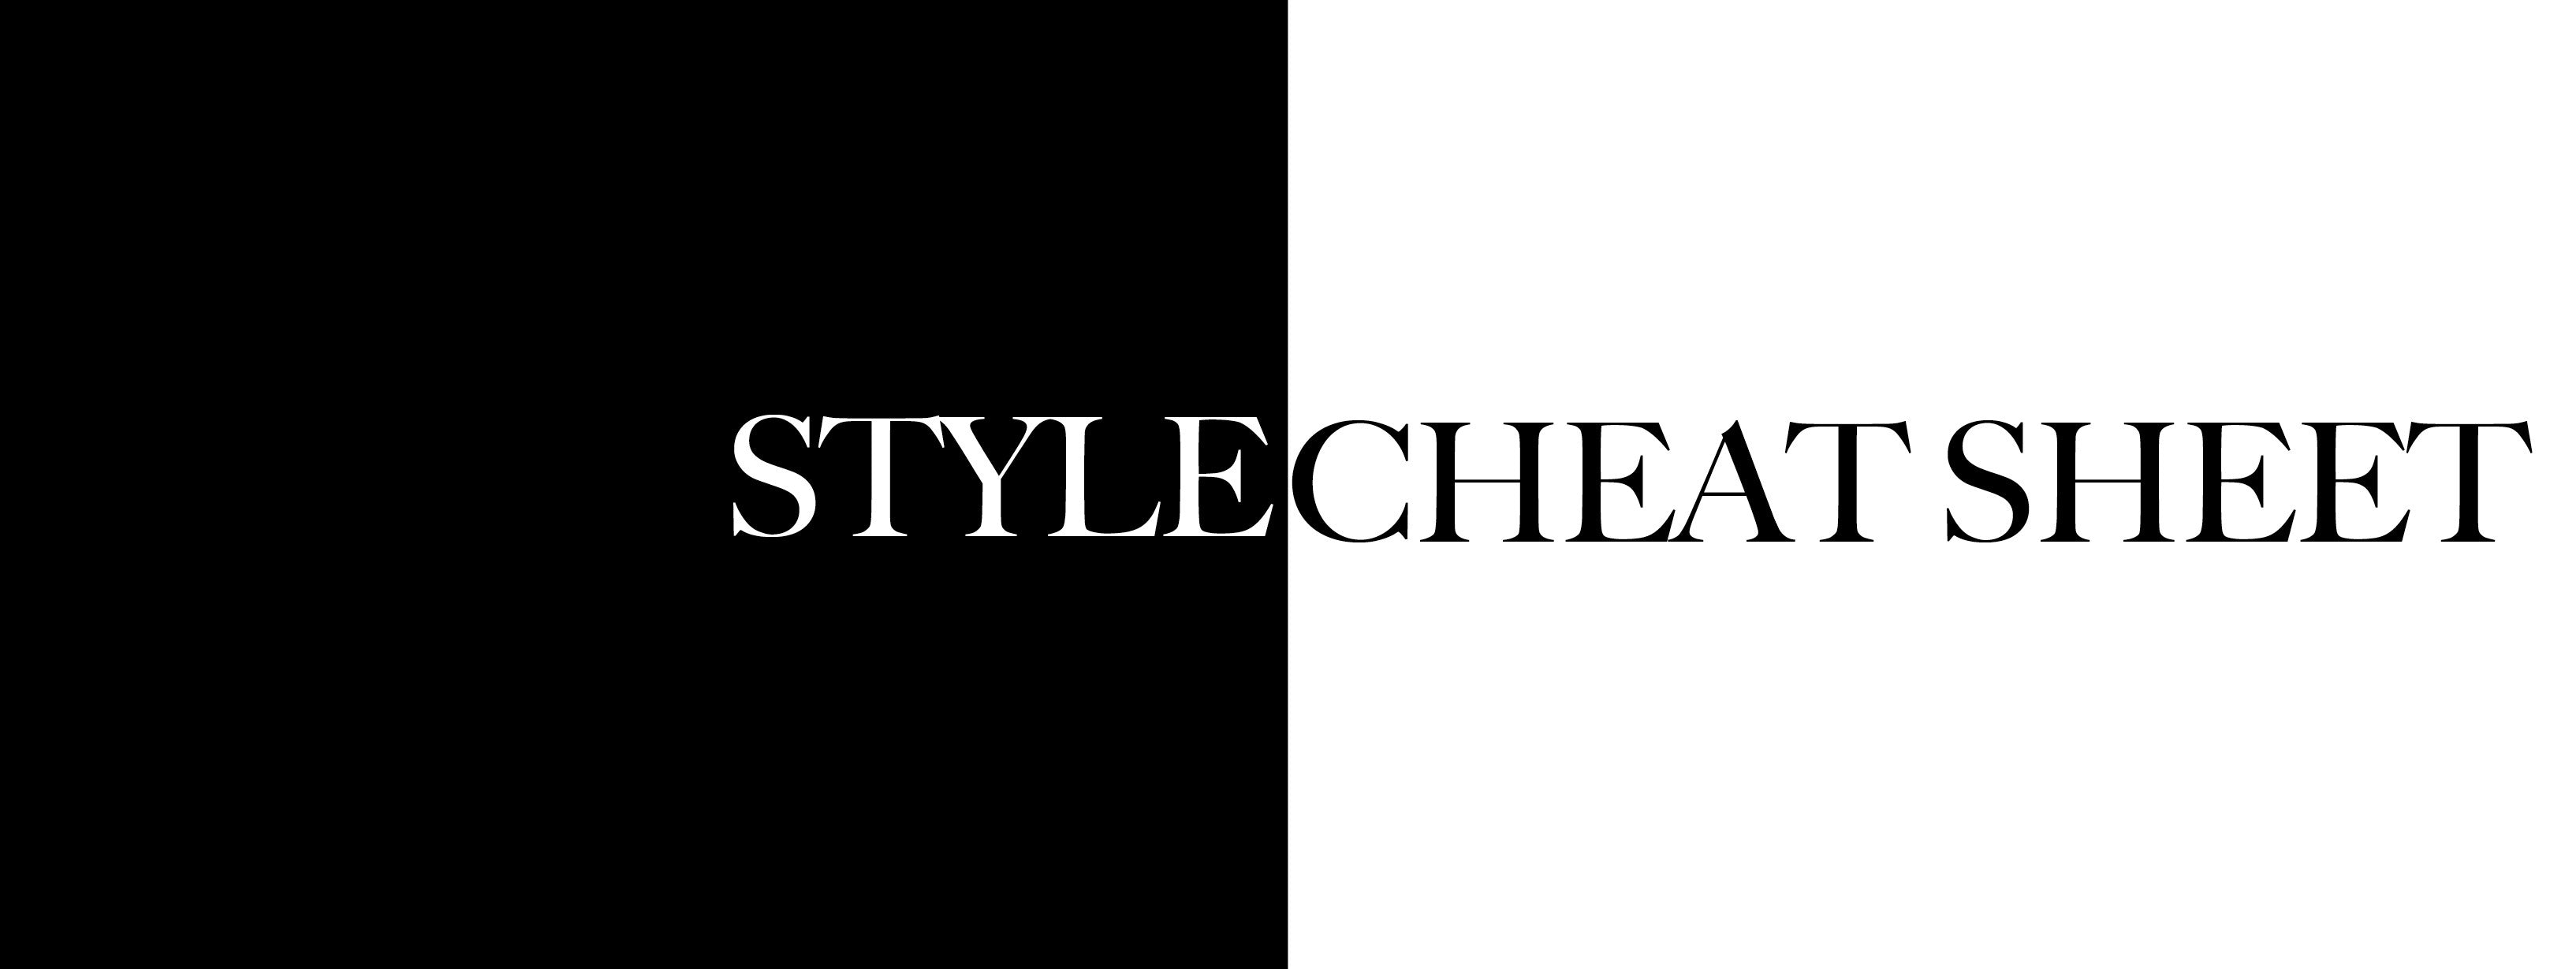 Blog: Style Cheat Sheet